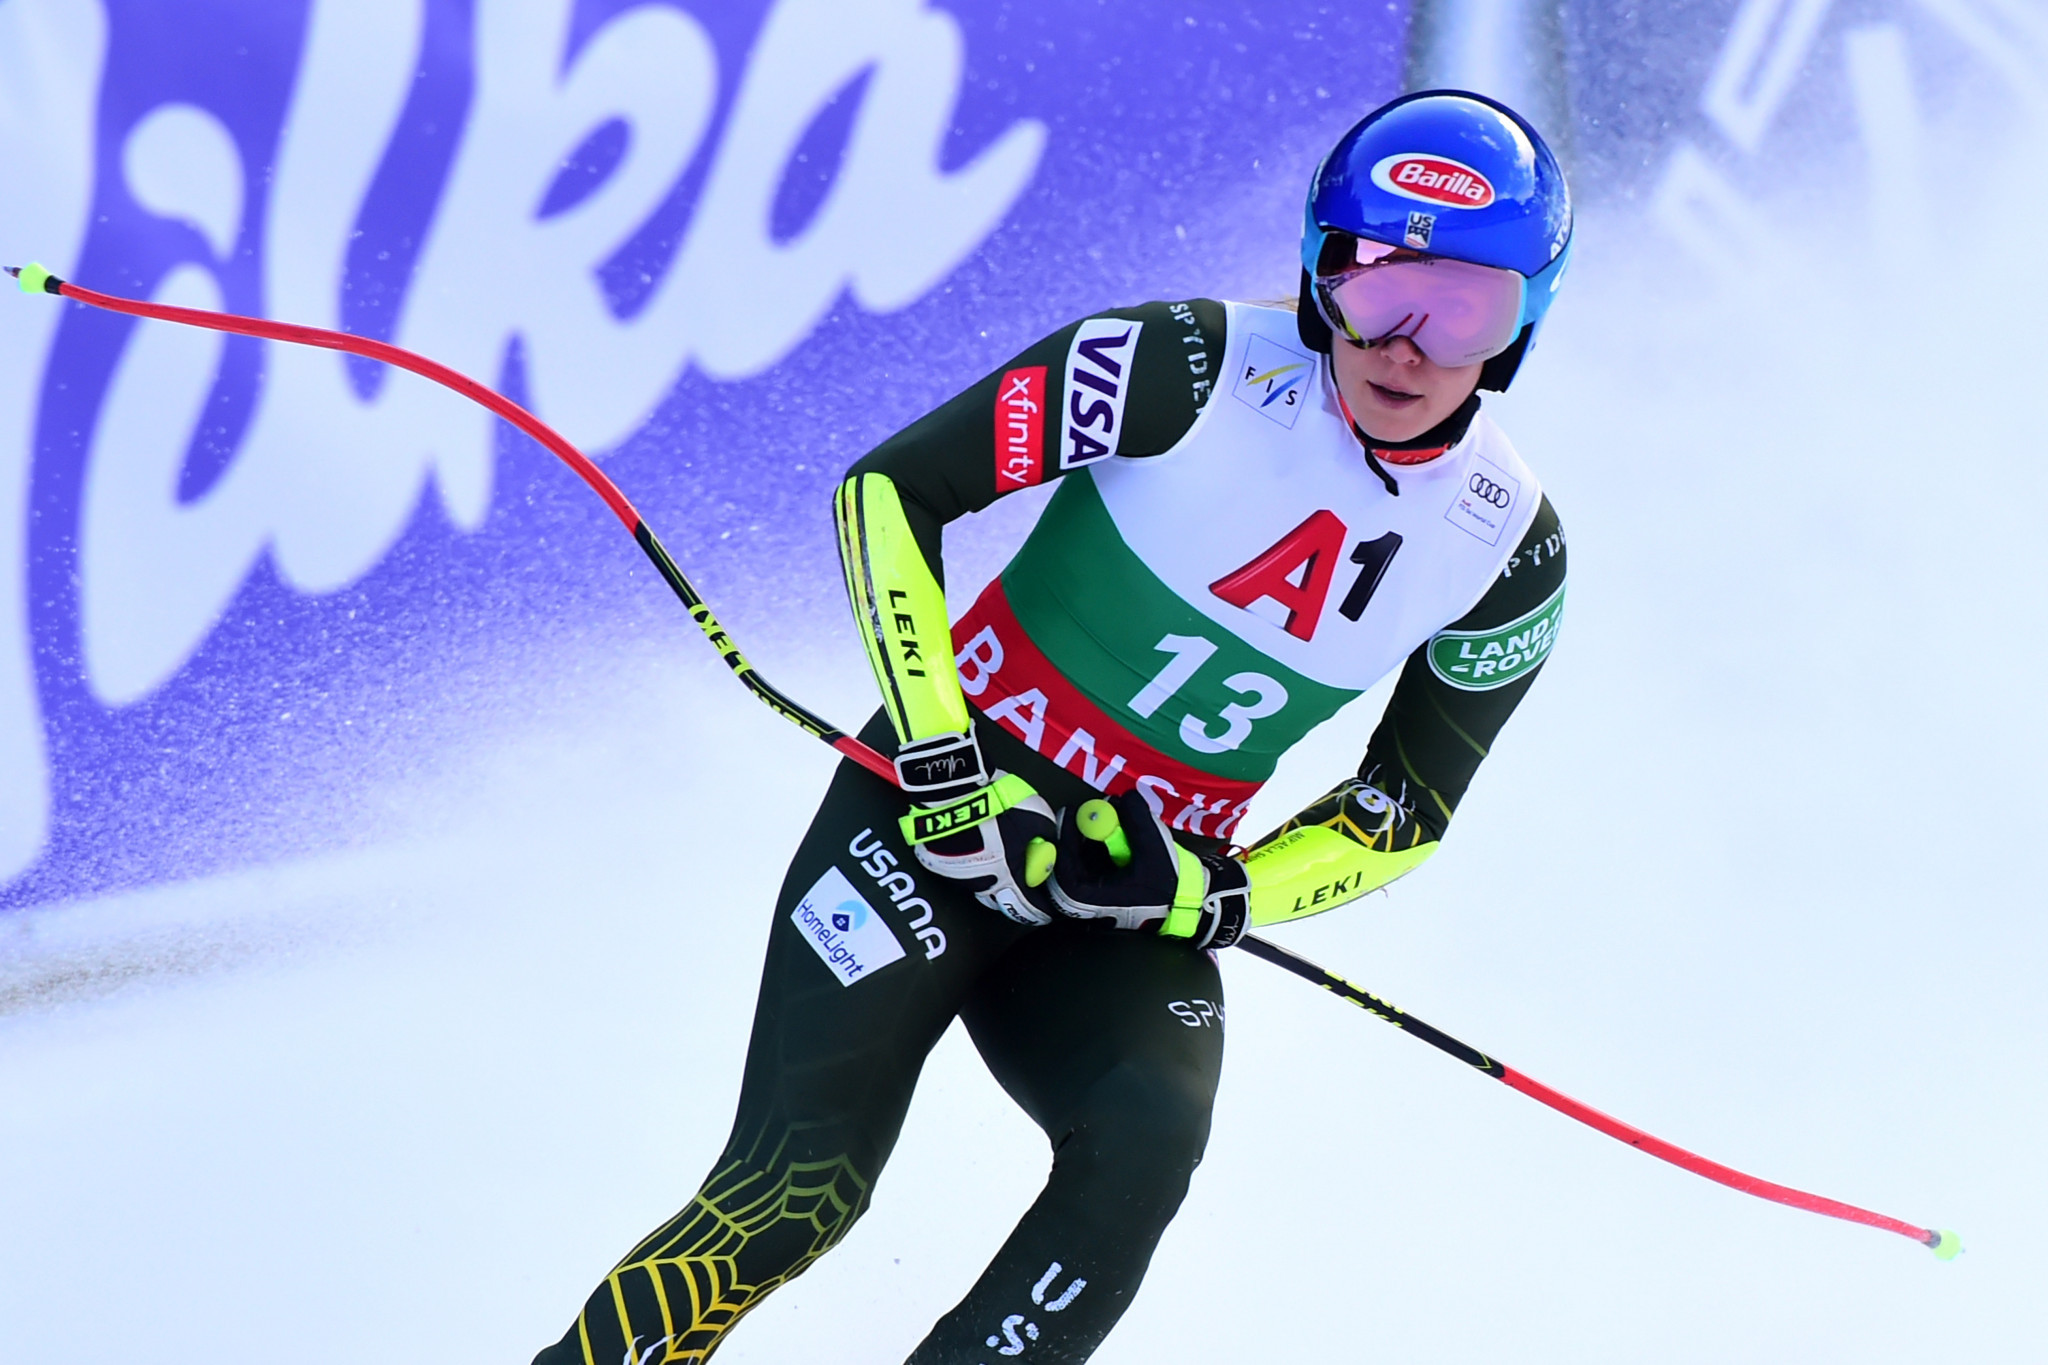 Mikaela Shiffrin will miss the opening event of the World Cup season with a back complaint ©Getty Images